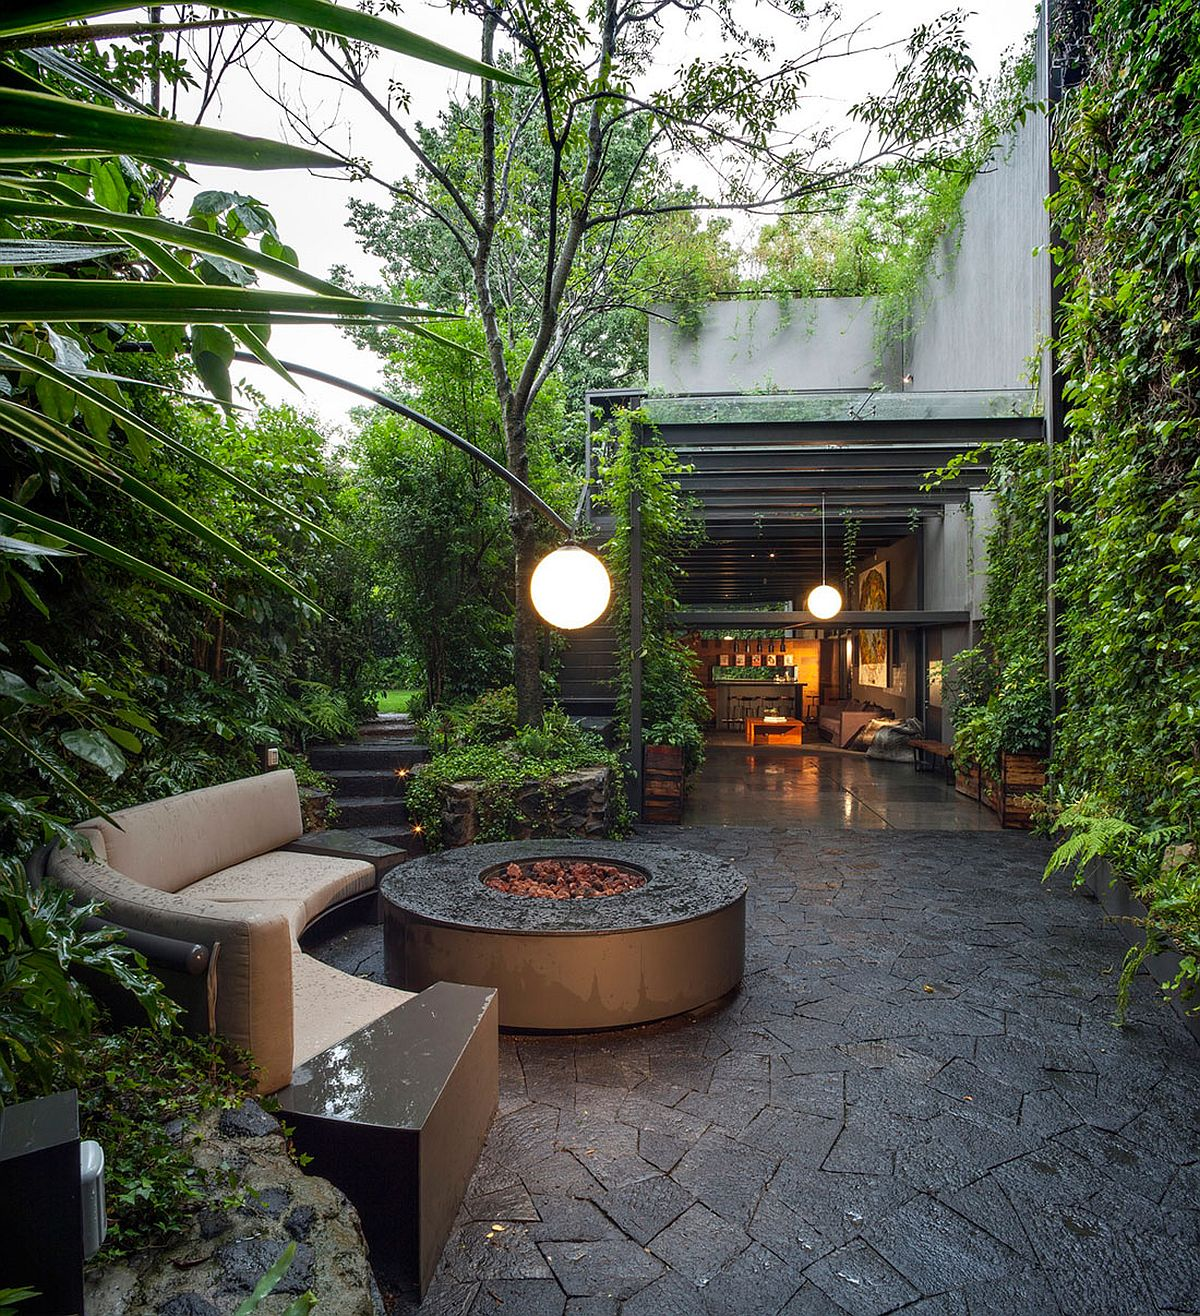 lavish outdoors stunning courtyards and a cloak of greenery view in gallery entry courtyard and outdoor lounge of the lavish mexican home lavish outdoors stunning courtyards and